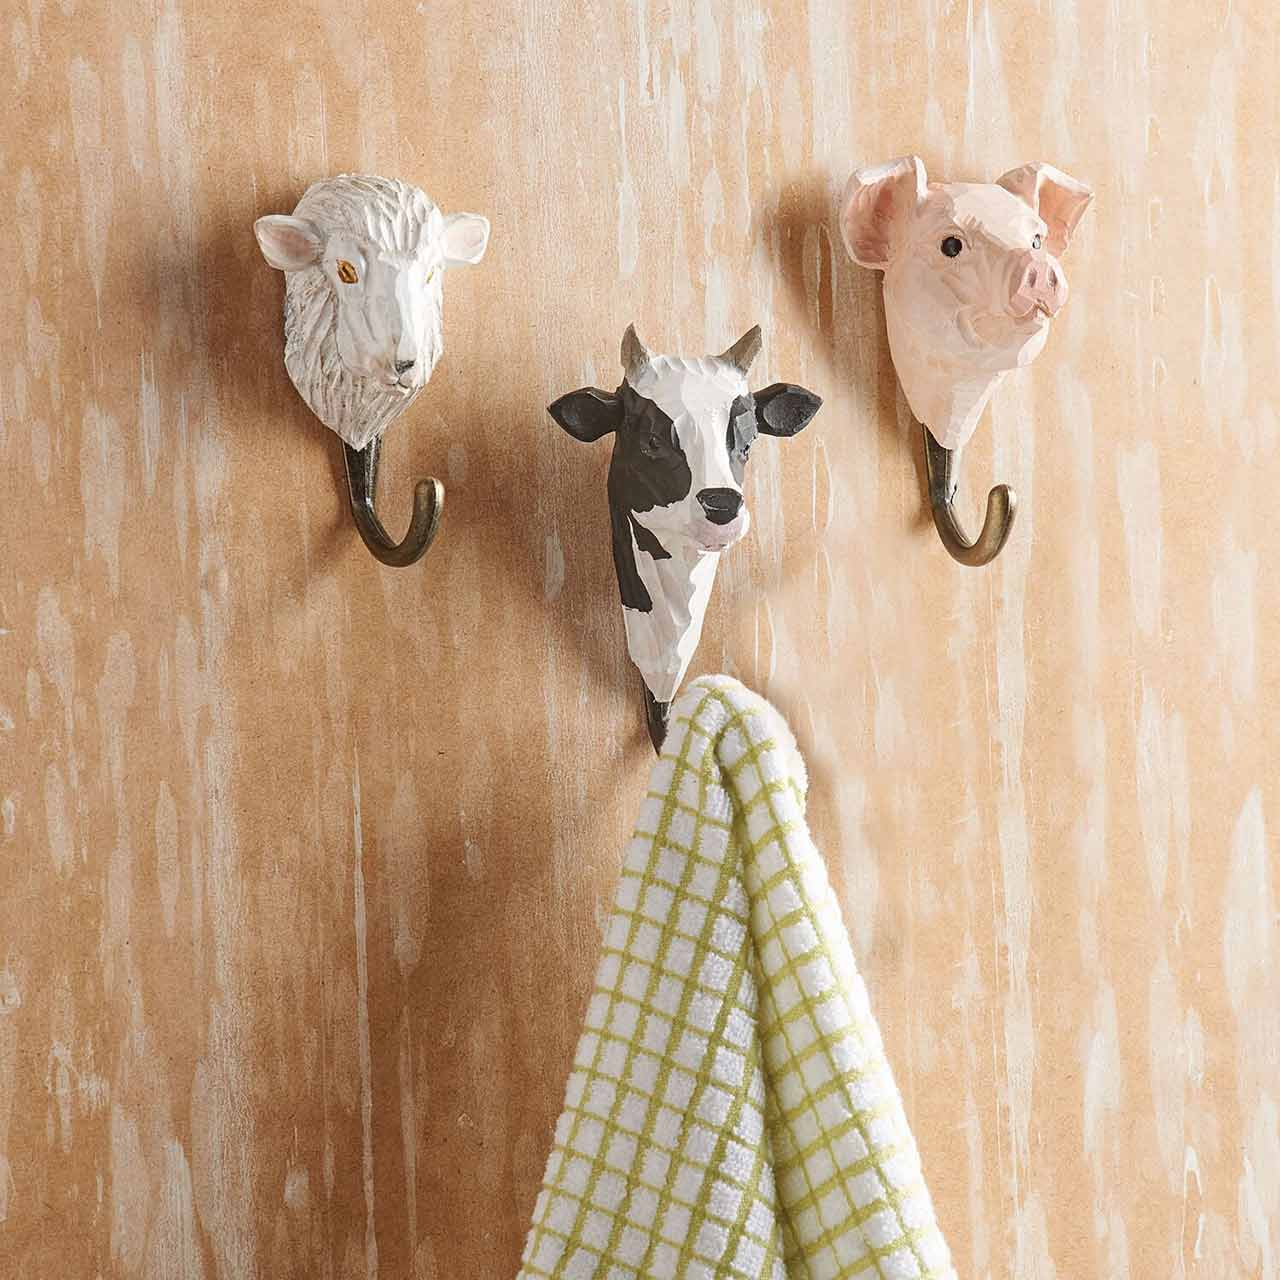 WILDLIFE GARDEN Wall Hooks (only cow hook incl. in offer) | the design gift shop